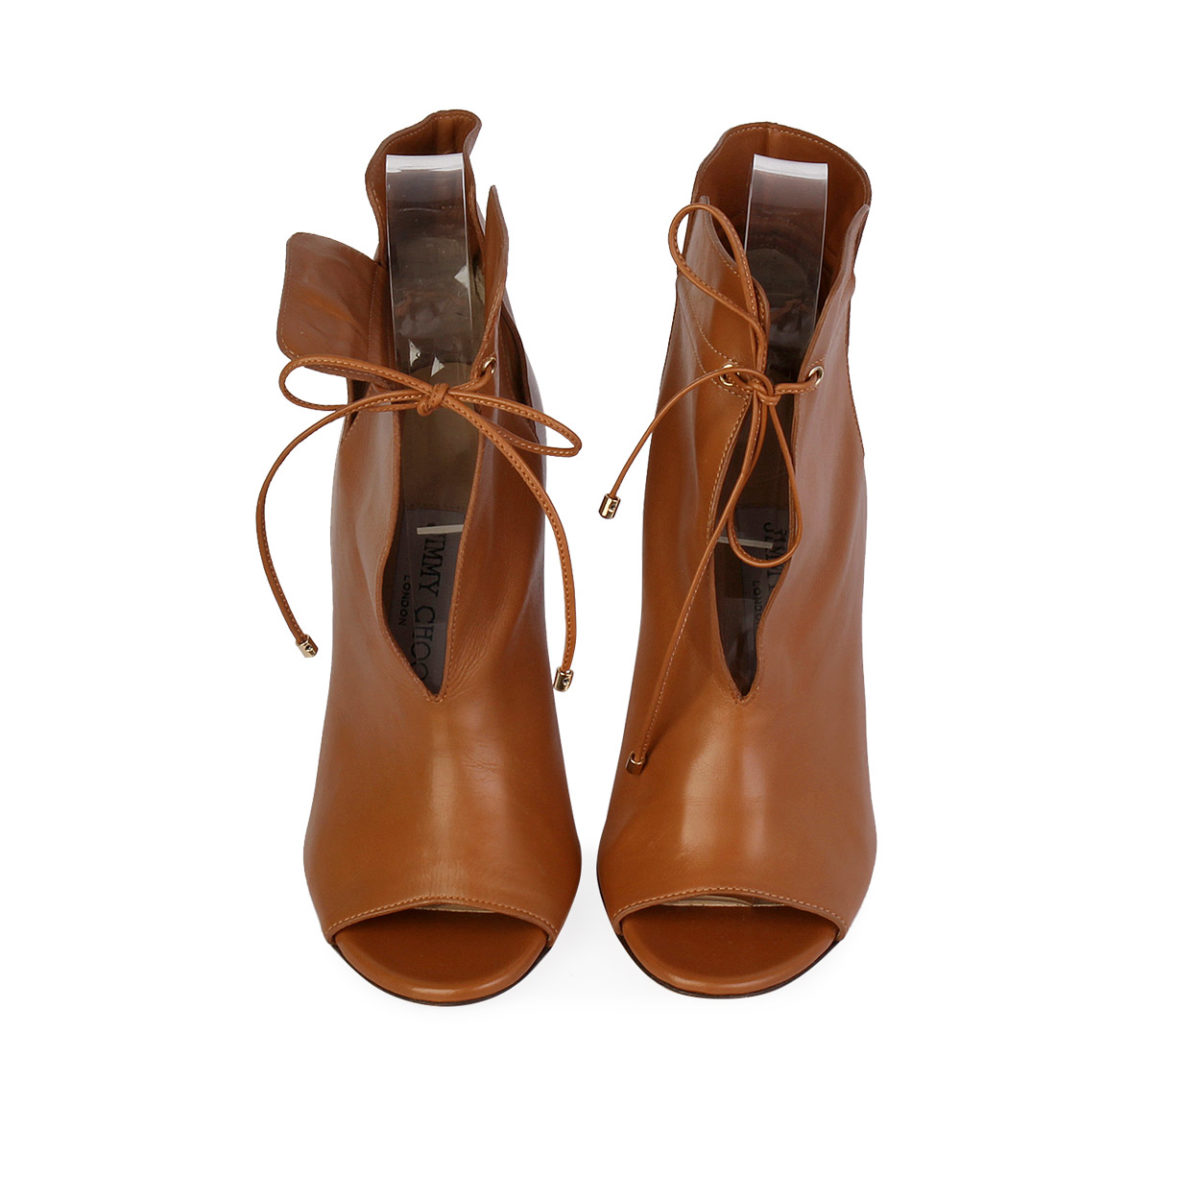 729f38b1e7a JIMMY CHOO Soft Leather Memphis 100 Ankle Booties Canyon - S  35 ...